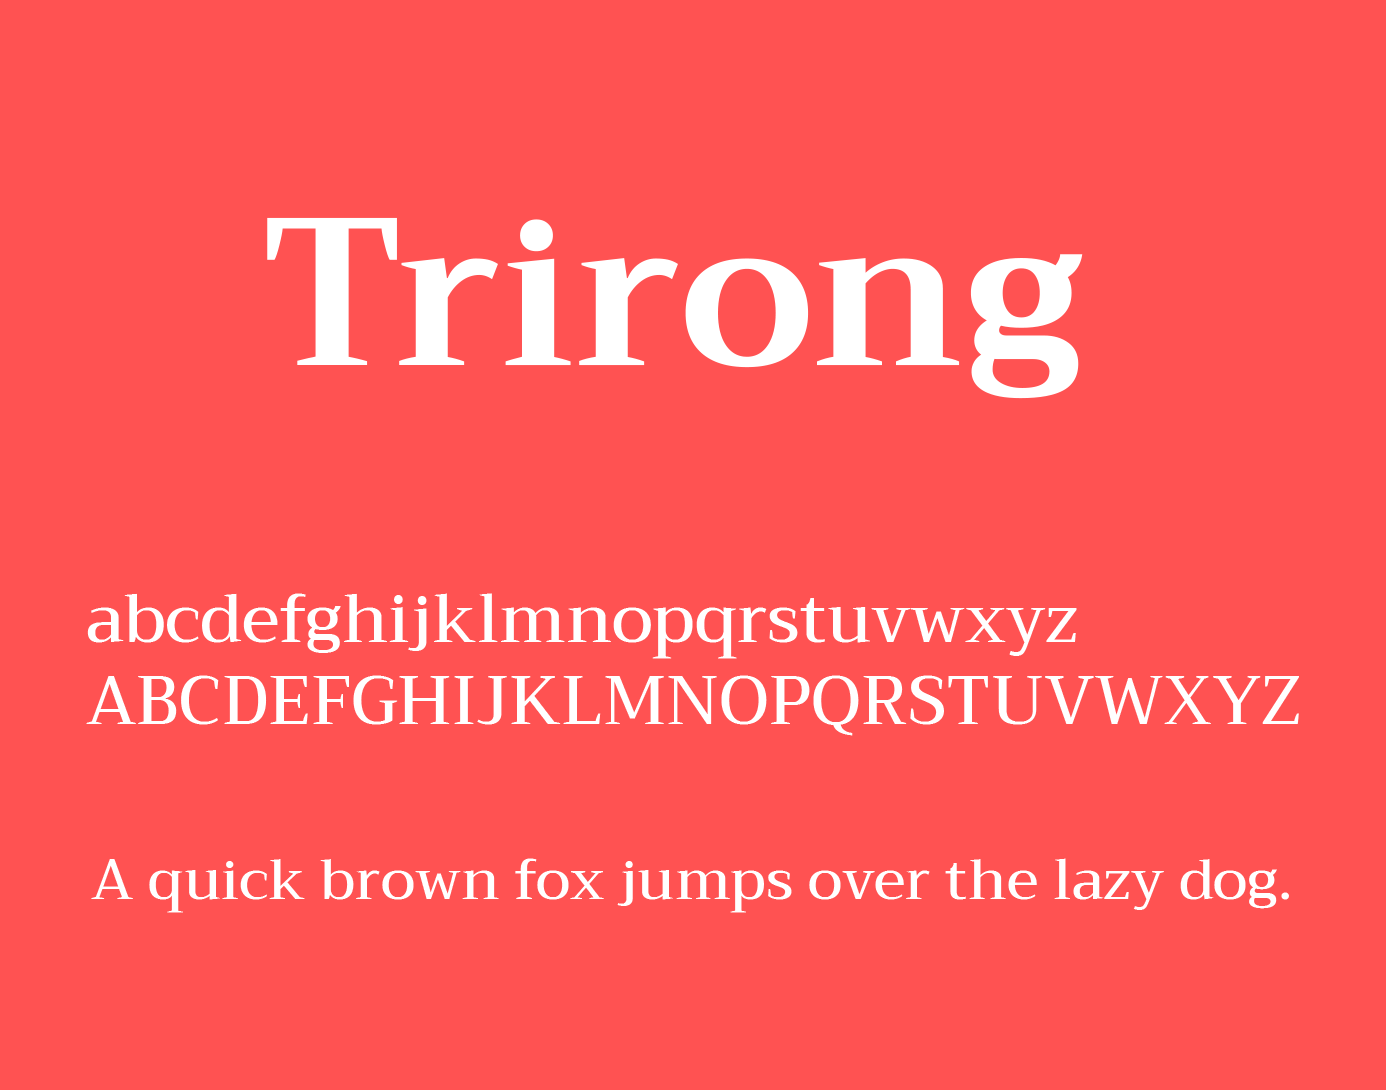 https://fontclarity.com/wp-content/uploads/2019/09/trirong-font-download-0.png Free Download